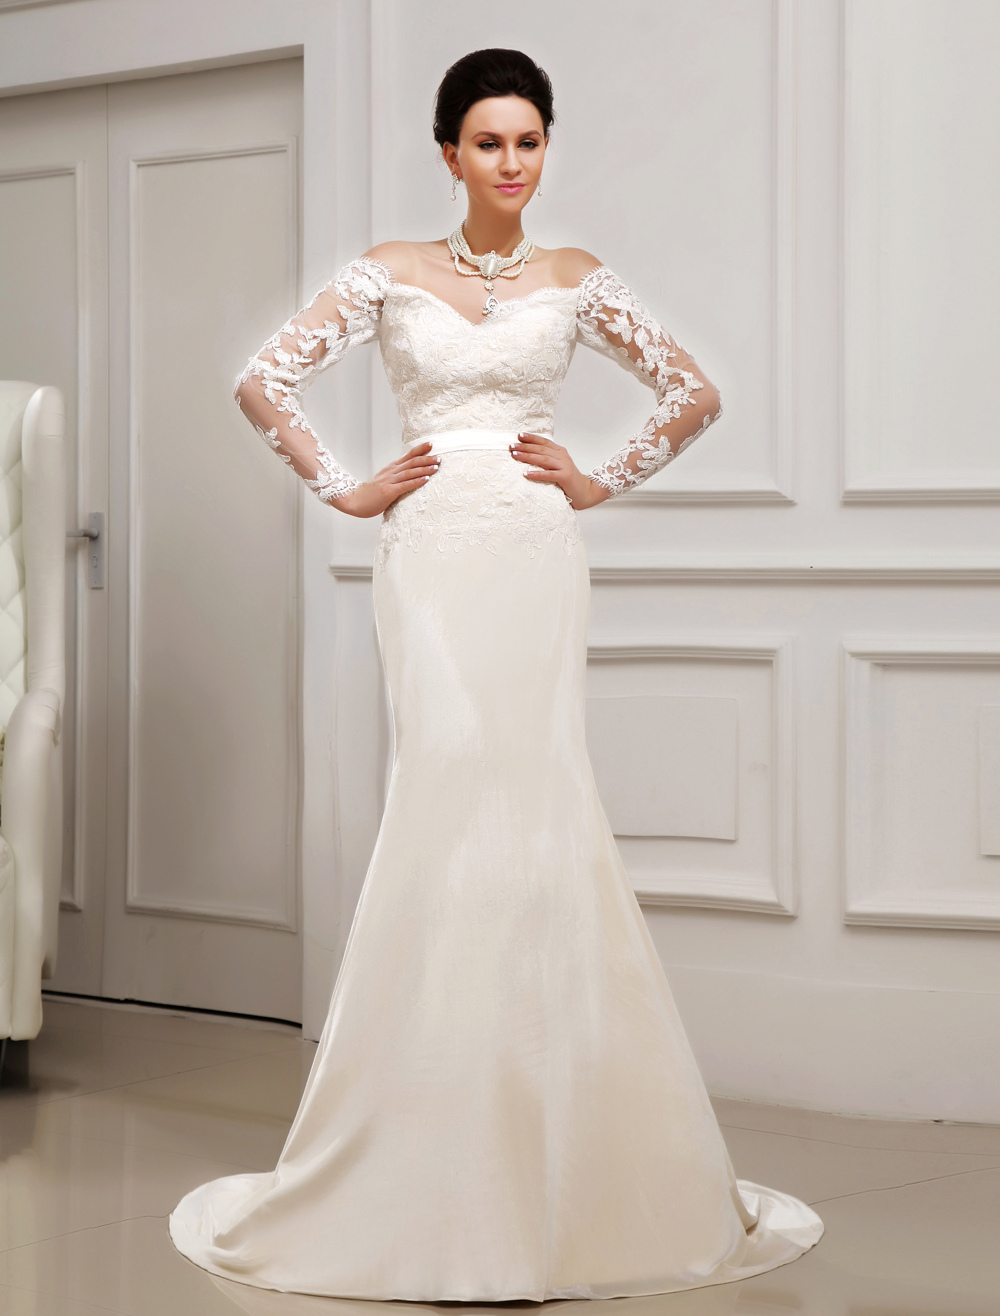 Ivory Bridal Wedding Dress with Applique  Milanoo